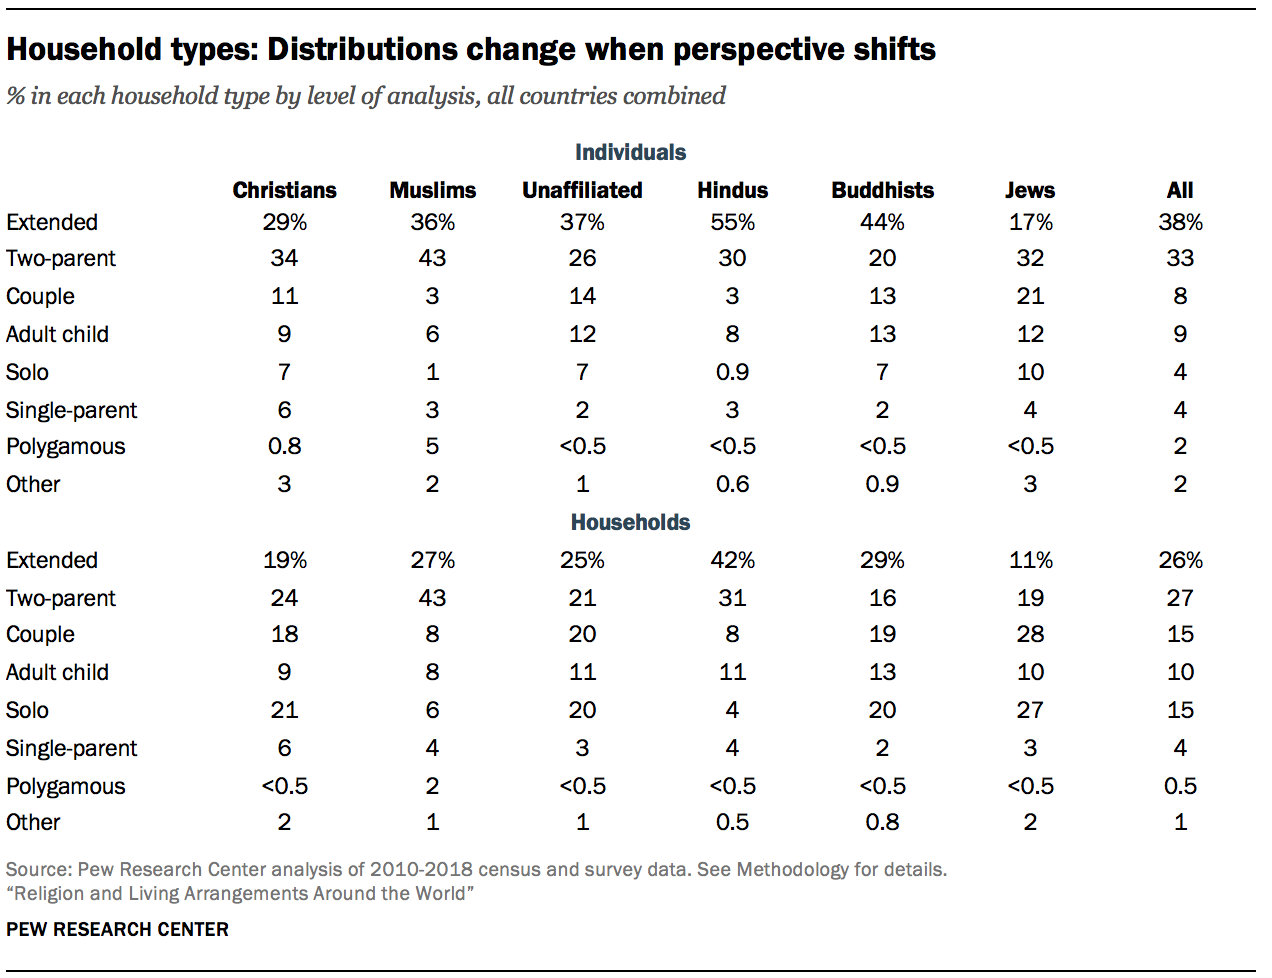 Household types: Distributions change when perspective shifts